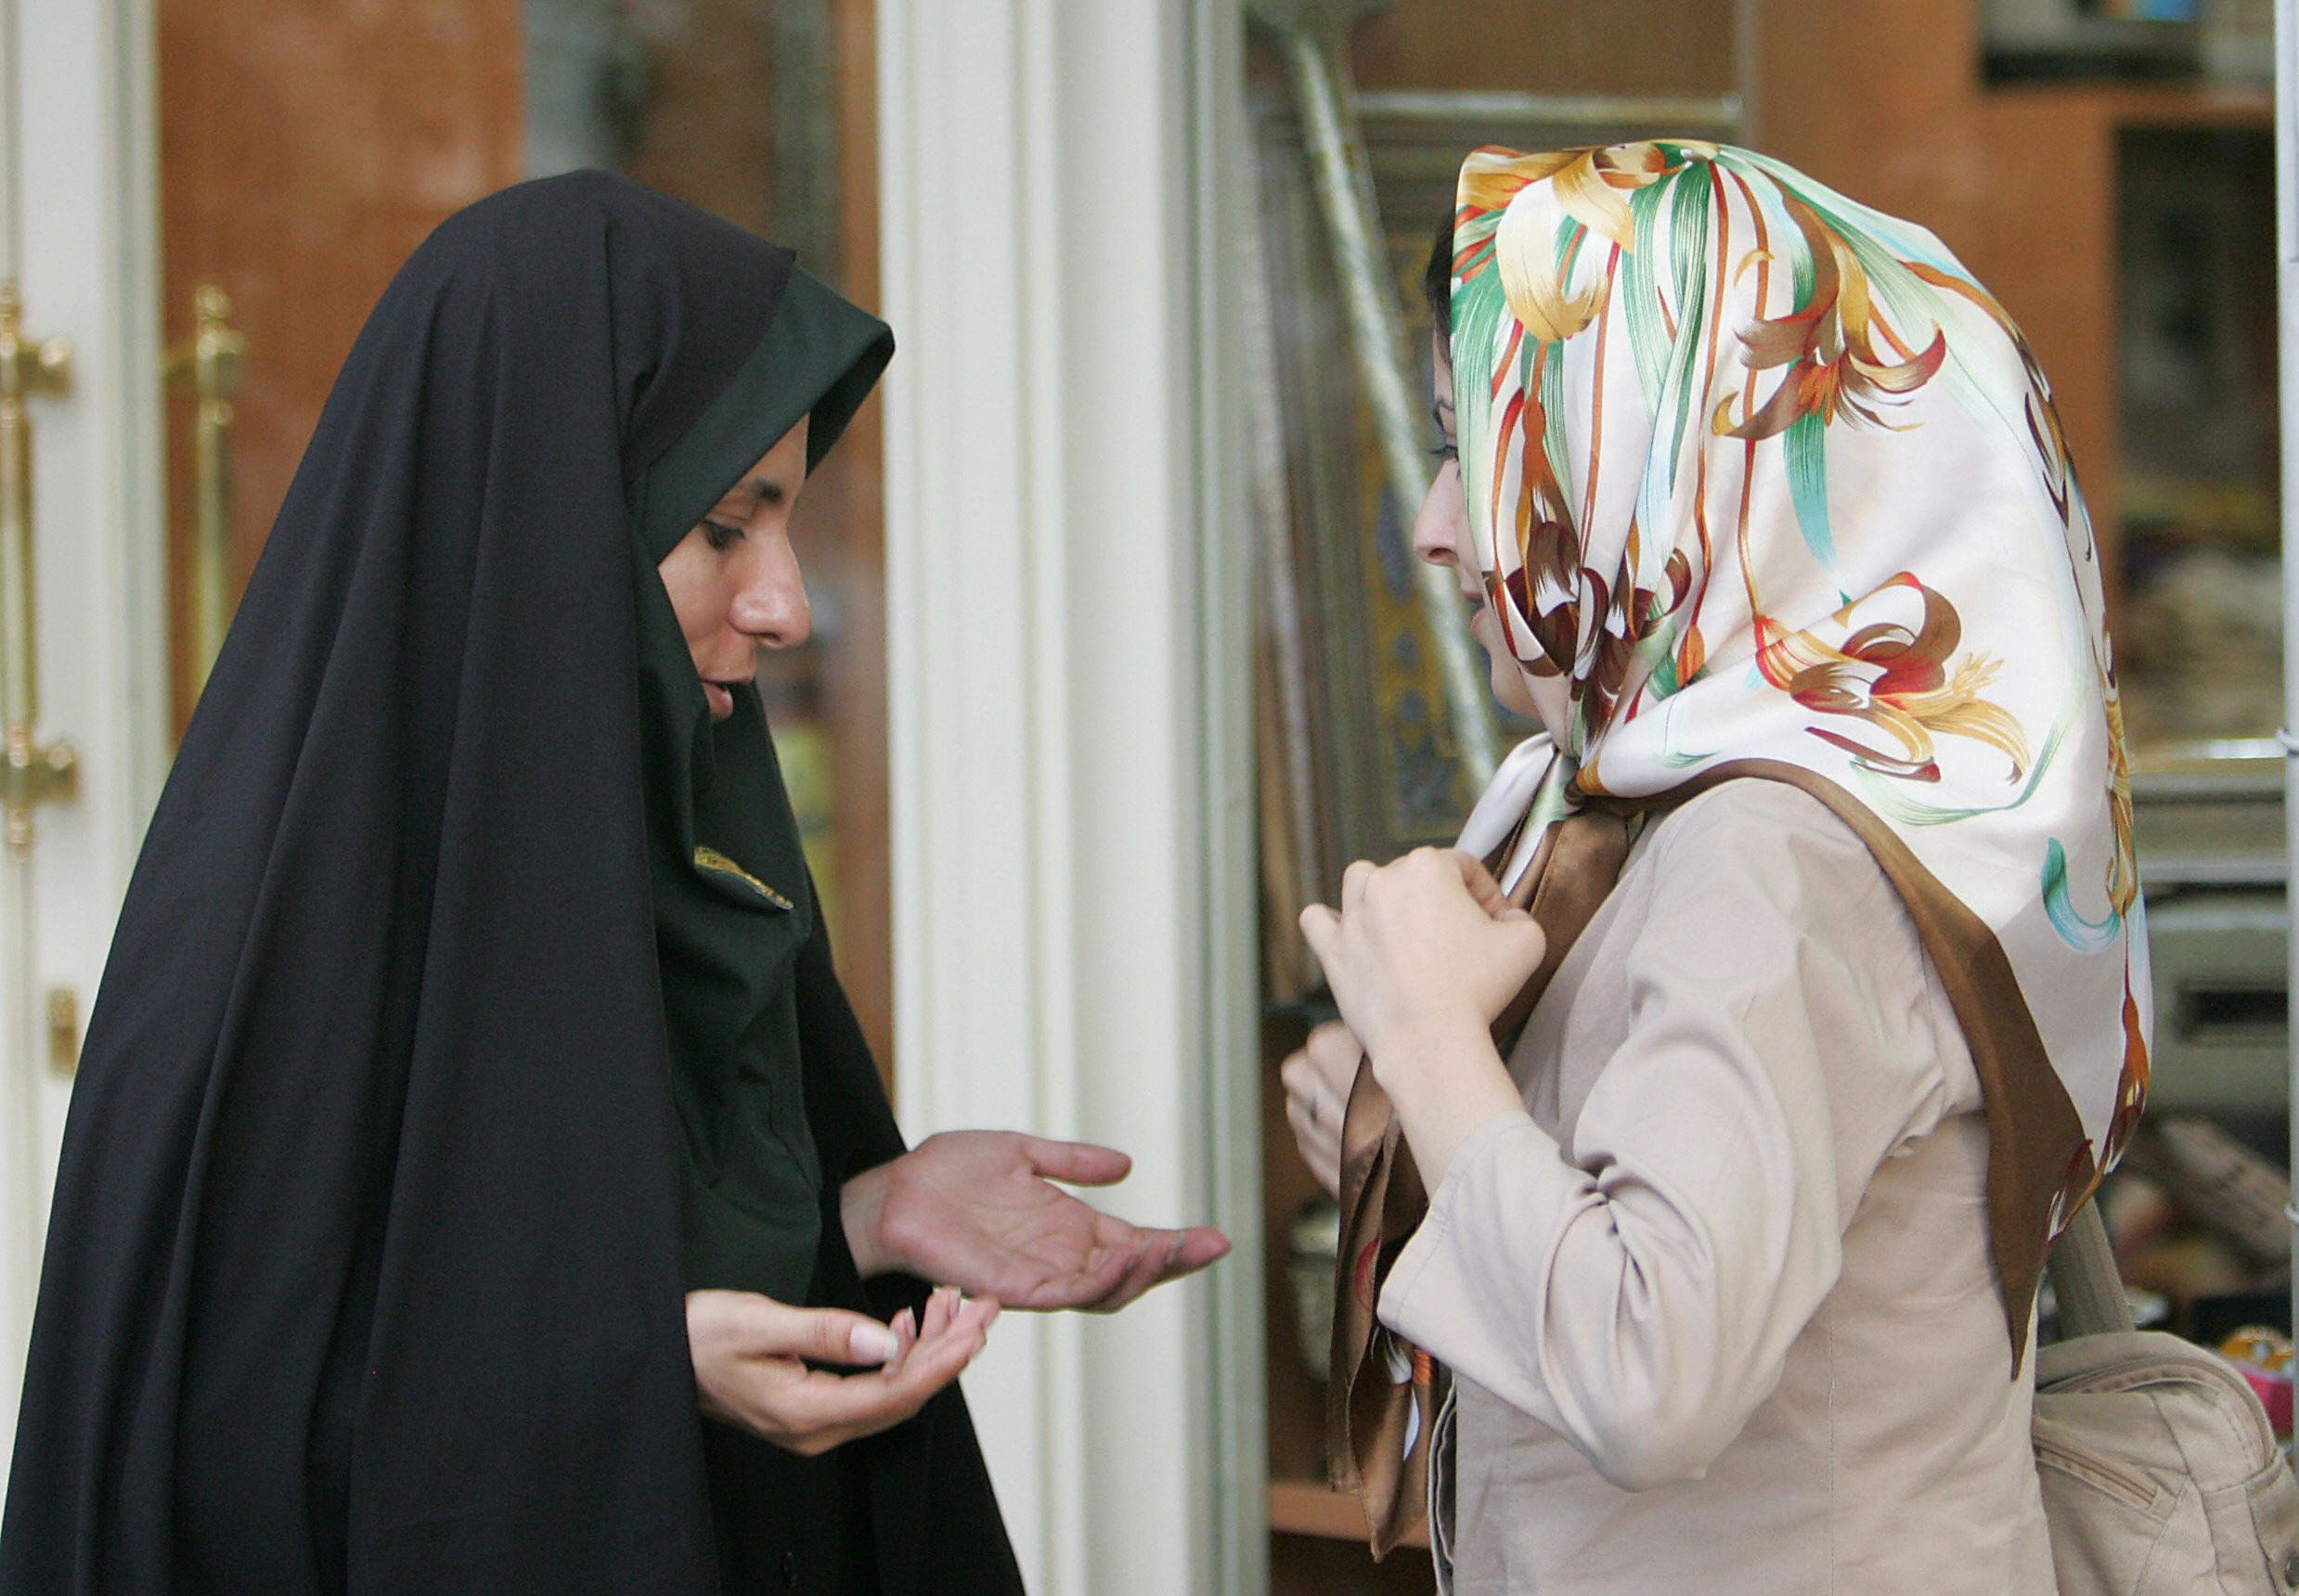 Tehran Police Say Women Will No Longer Be Arrested For Violating 'Islamic' Dress